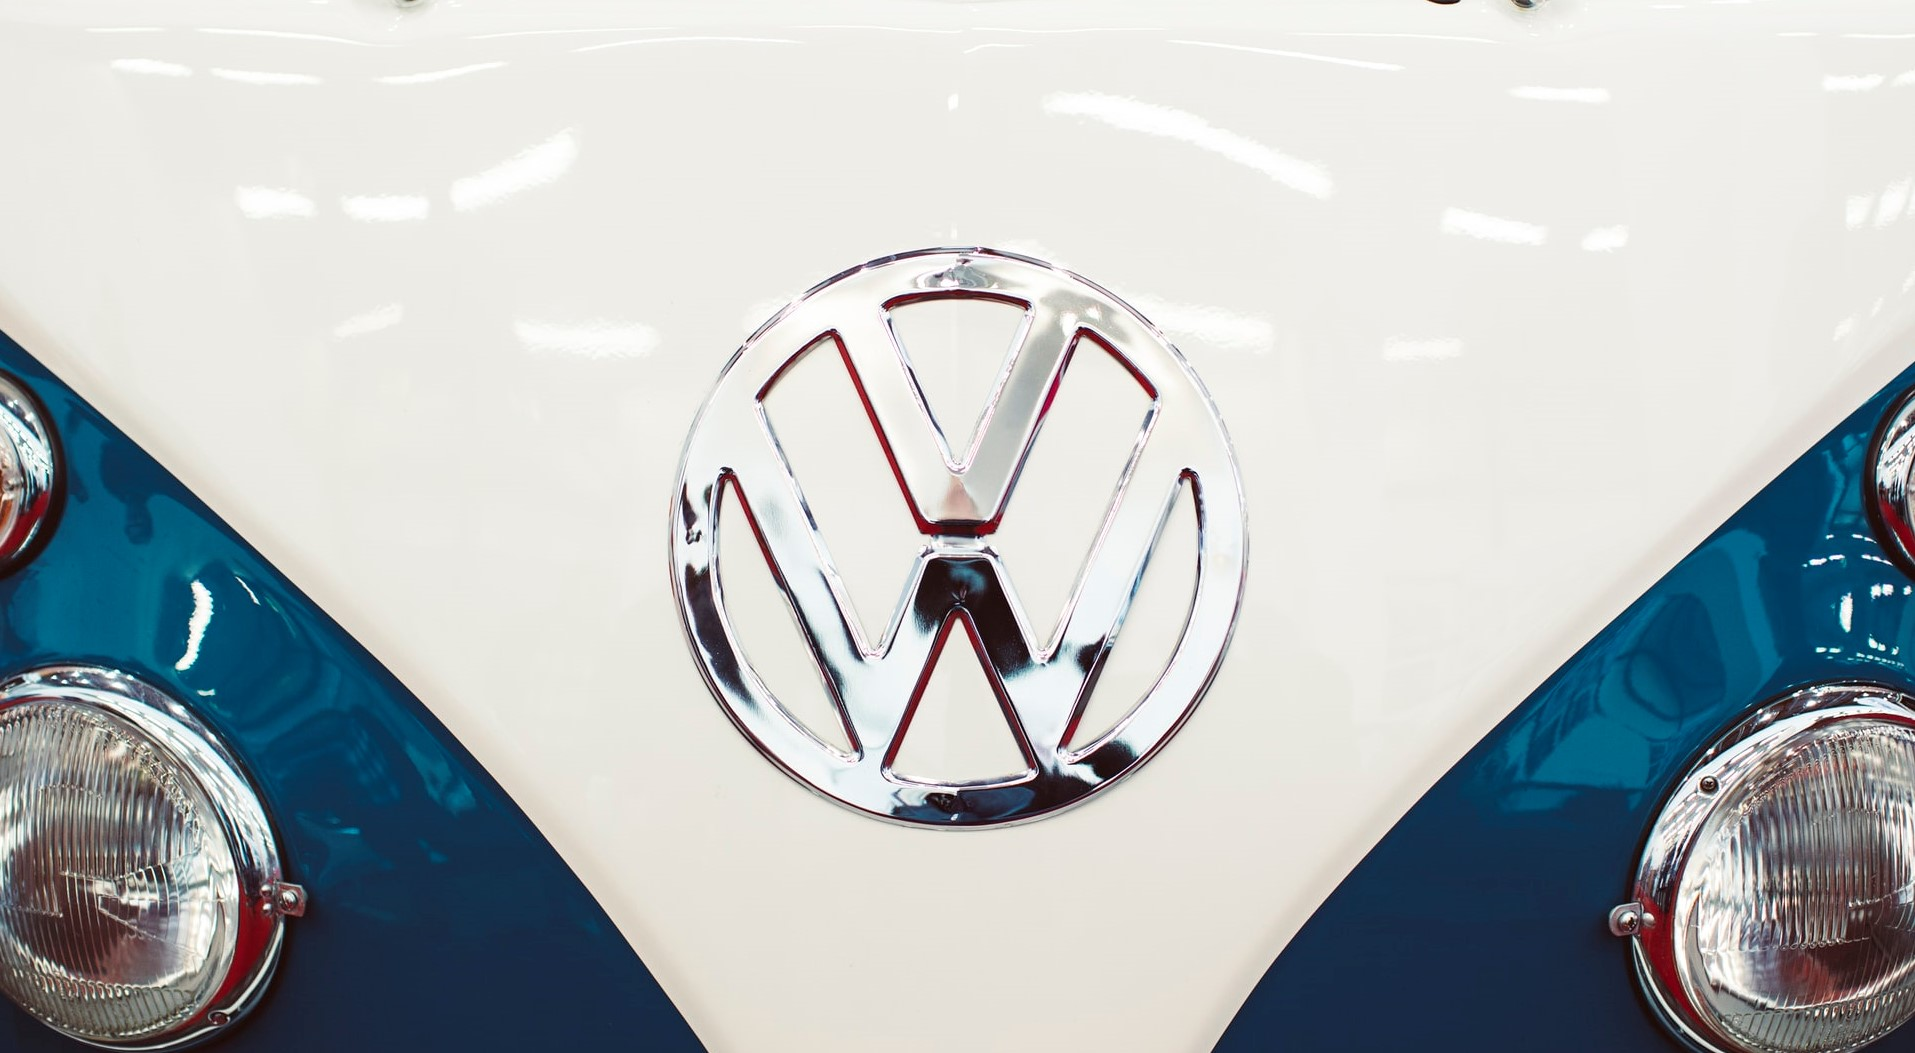 The shiny Volkswagen logo emblem on a VW bus